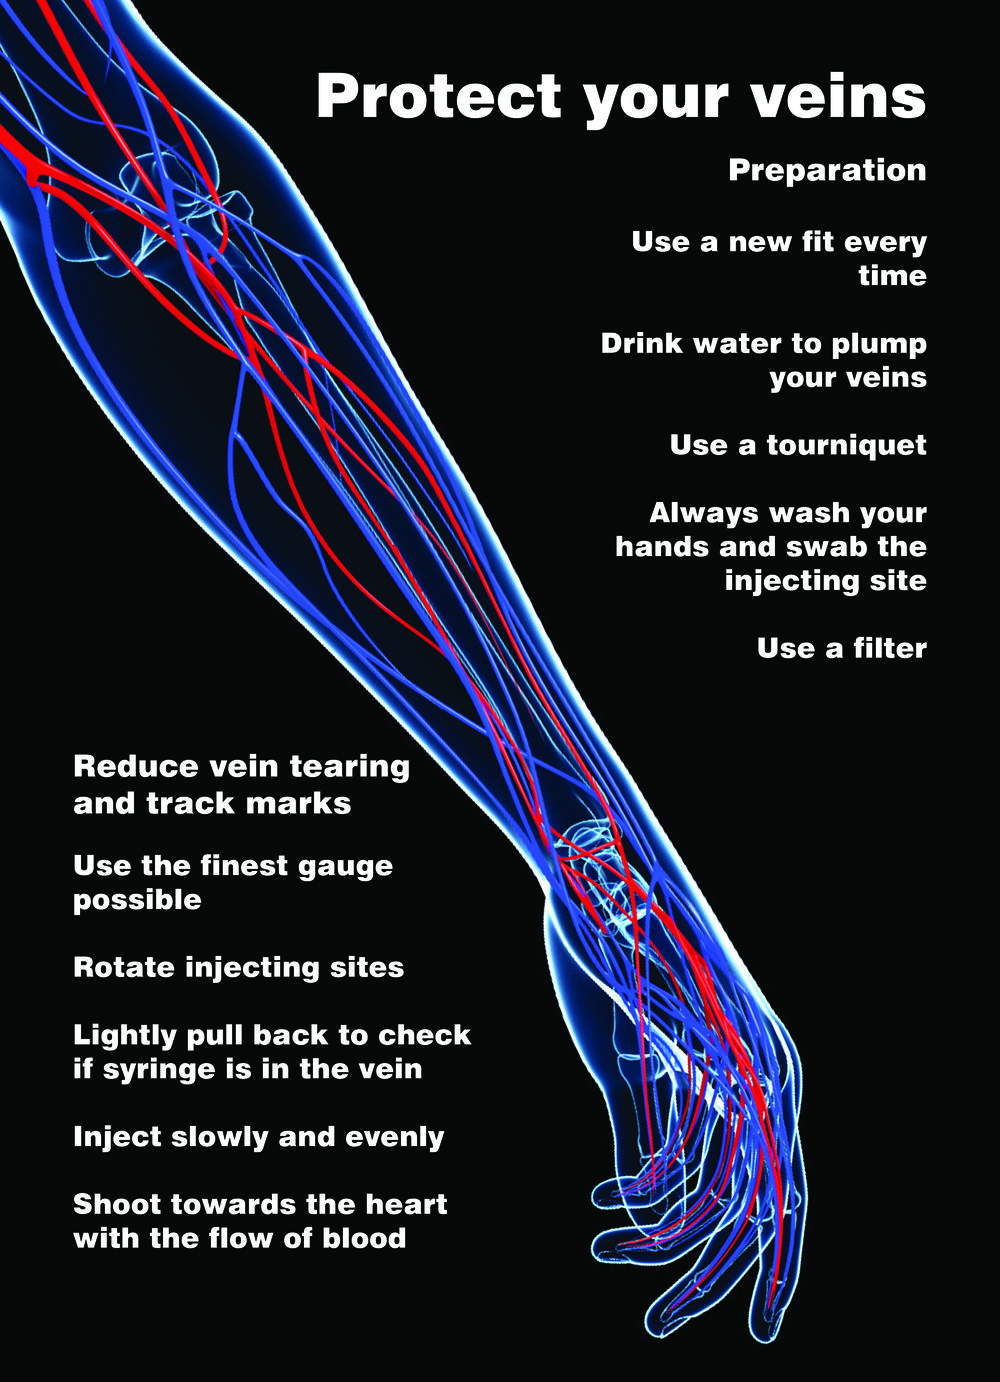 Protect Your Veins Poster Users News